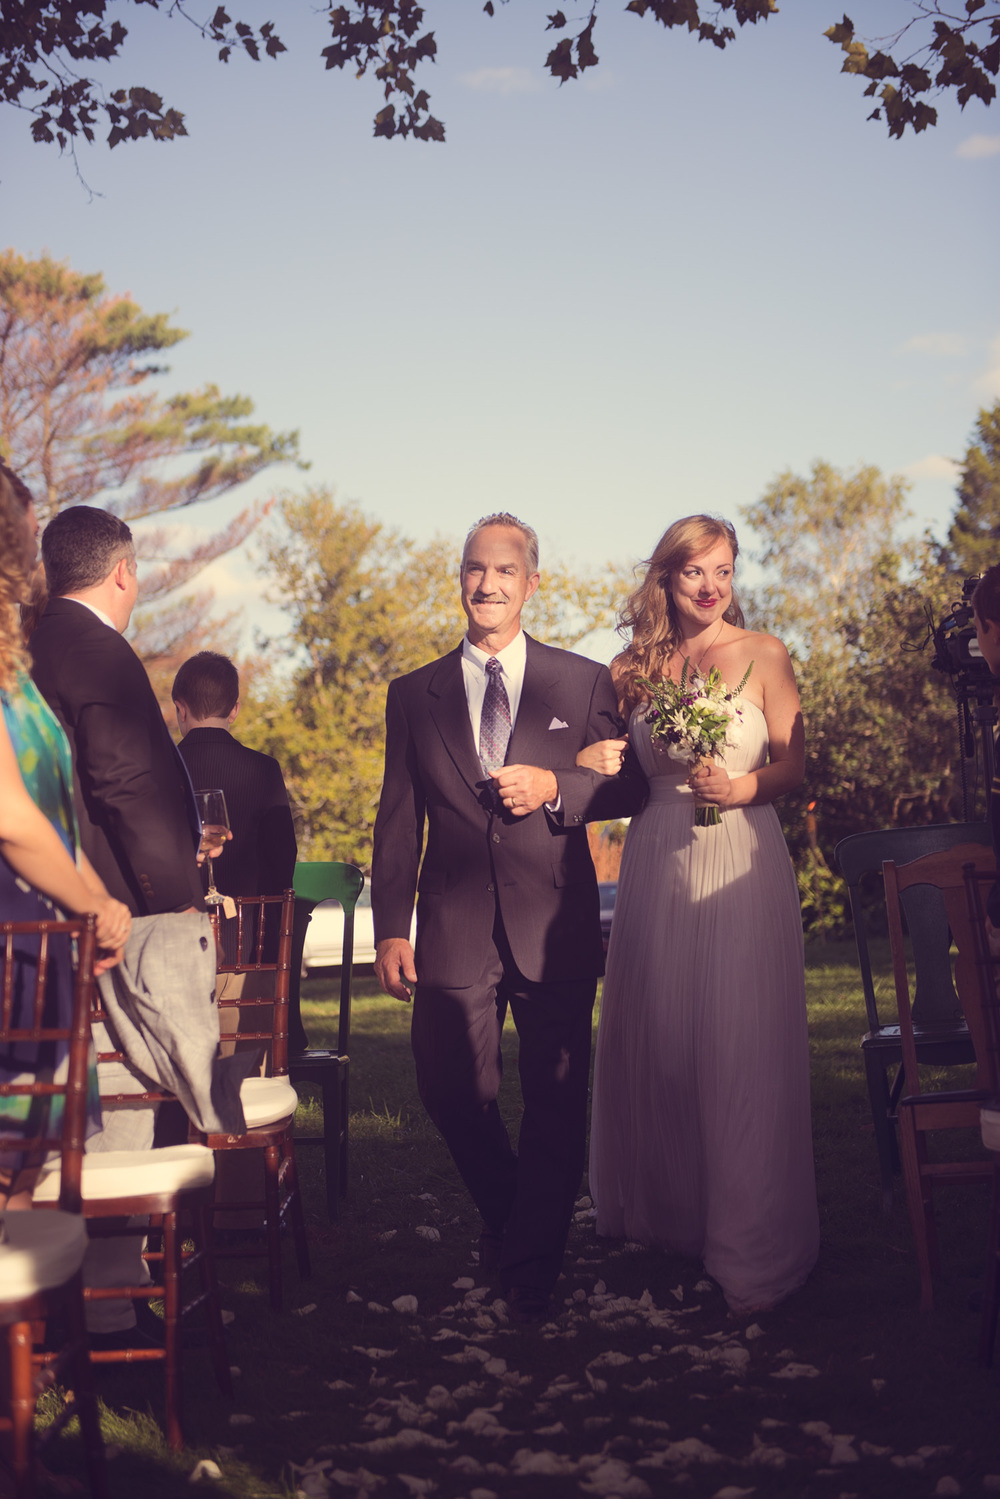 wedding bride father daughter aisle giving away